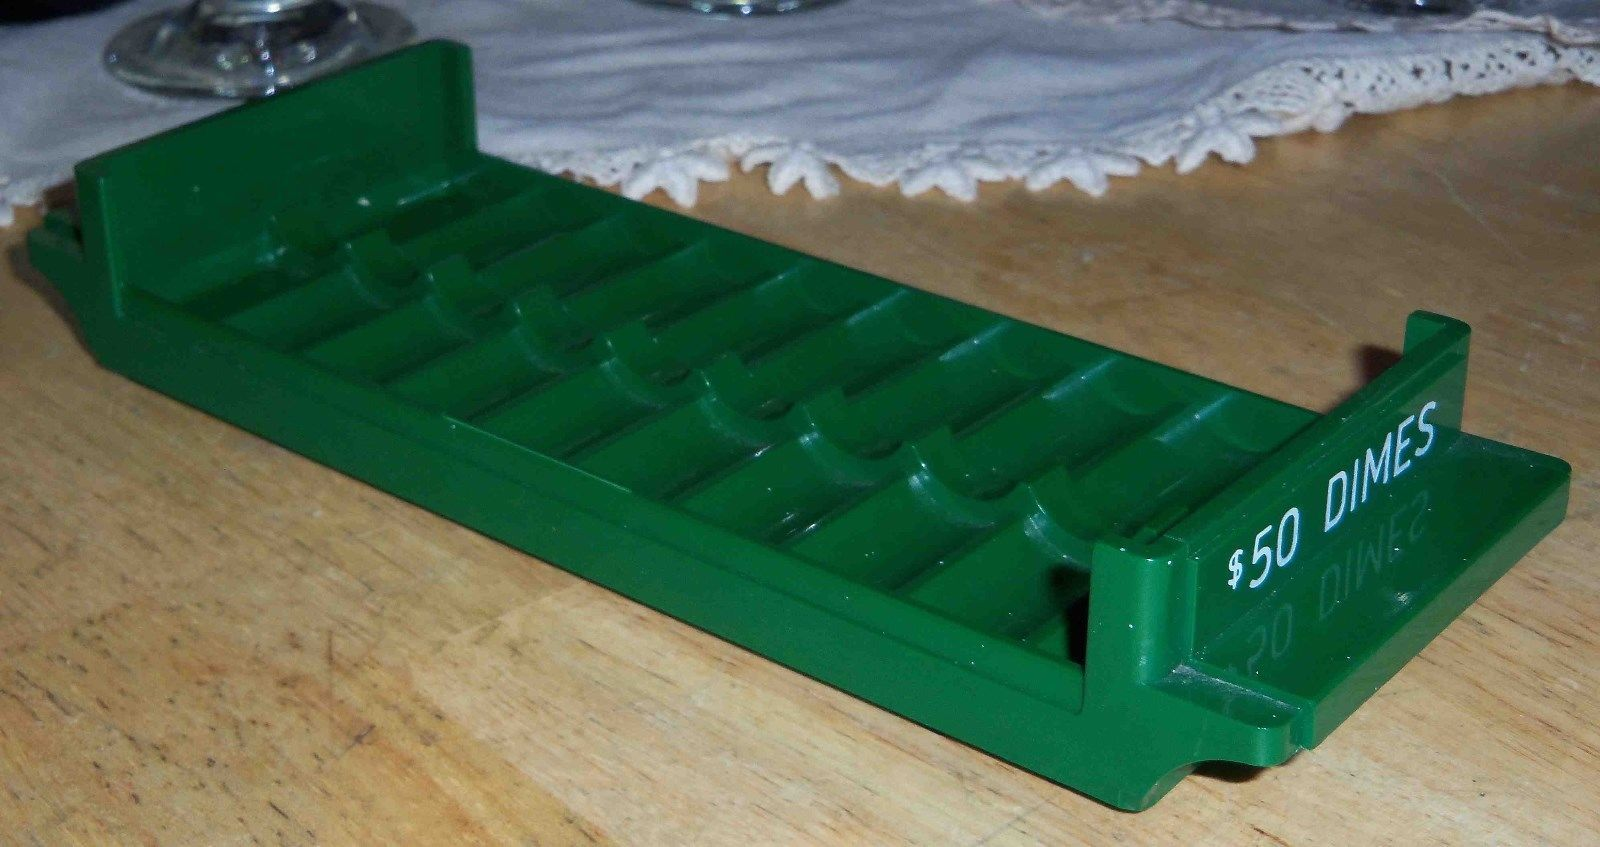 Primary image for Plastic Dime Coin Roll Holder $50 / 10 $5 Rolls Green Color-Coded Bank Equipment